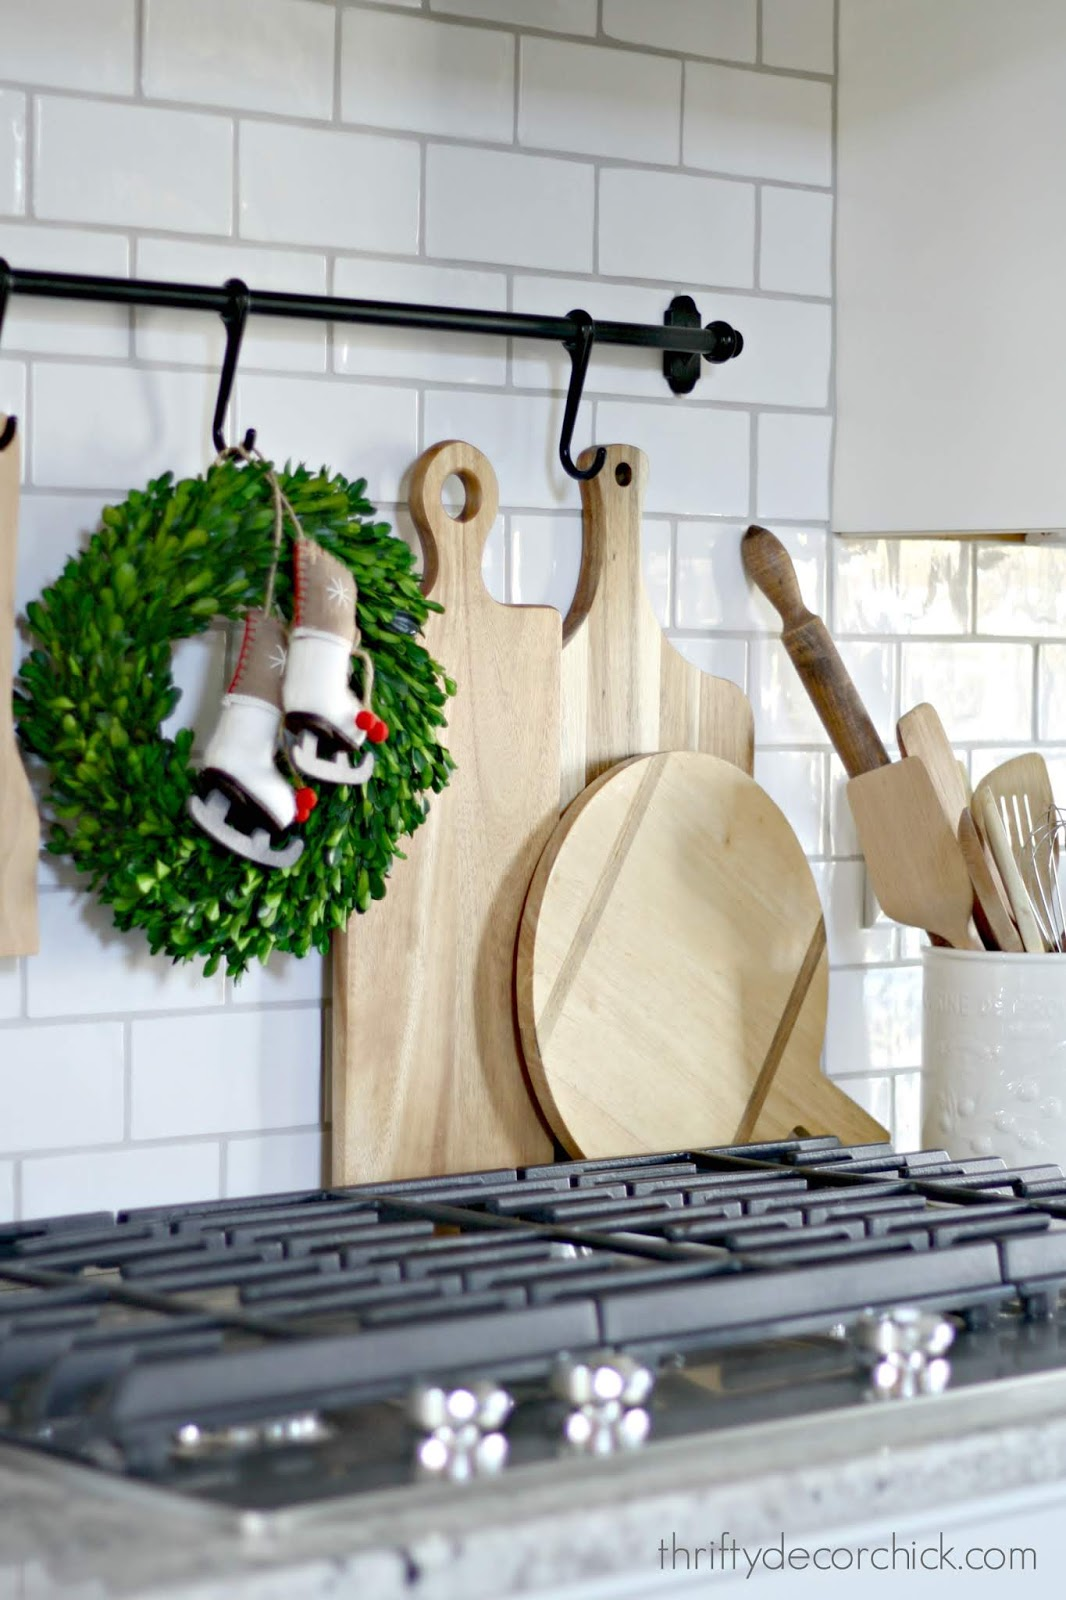 Decorating behind stovetop